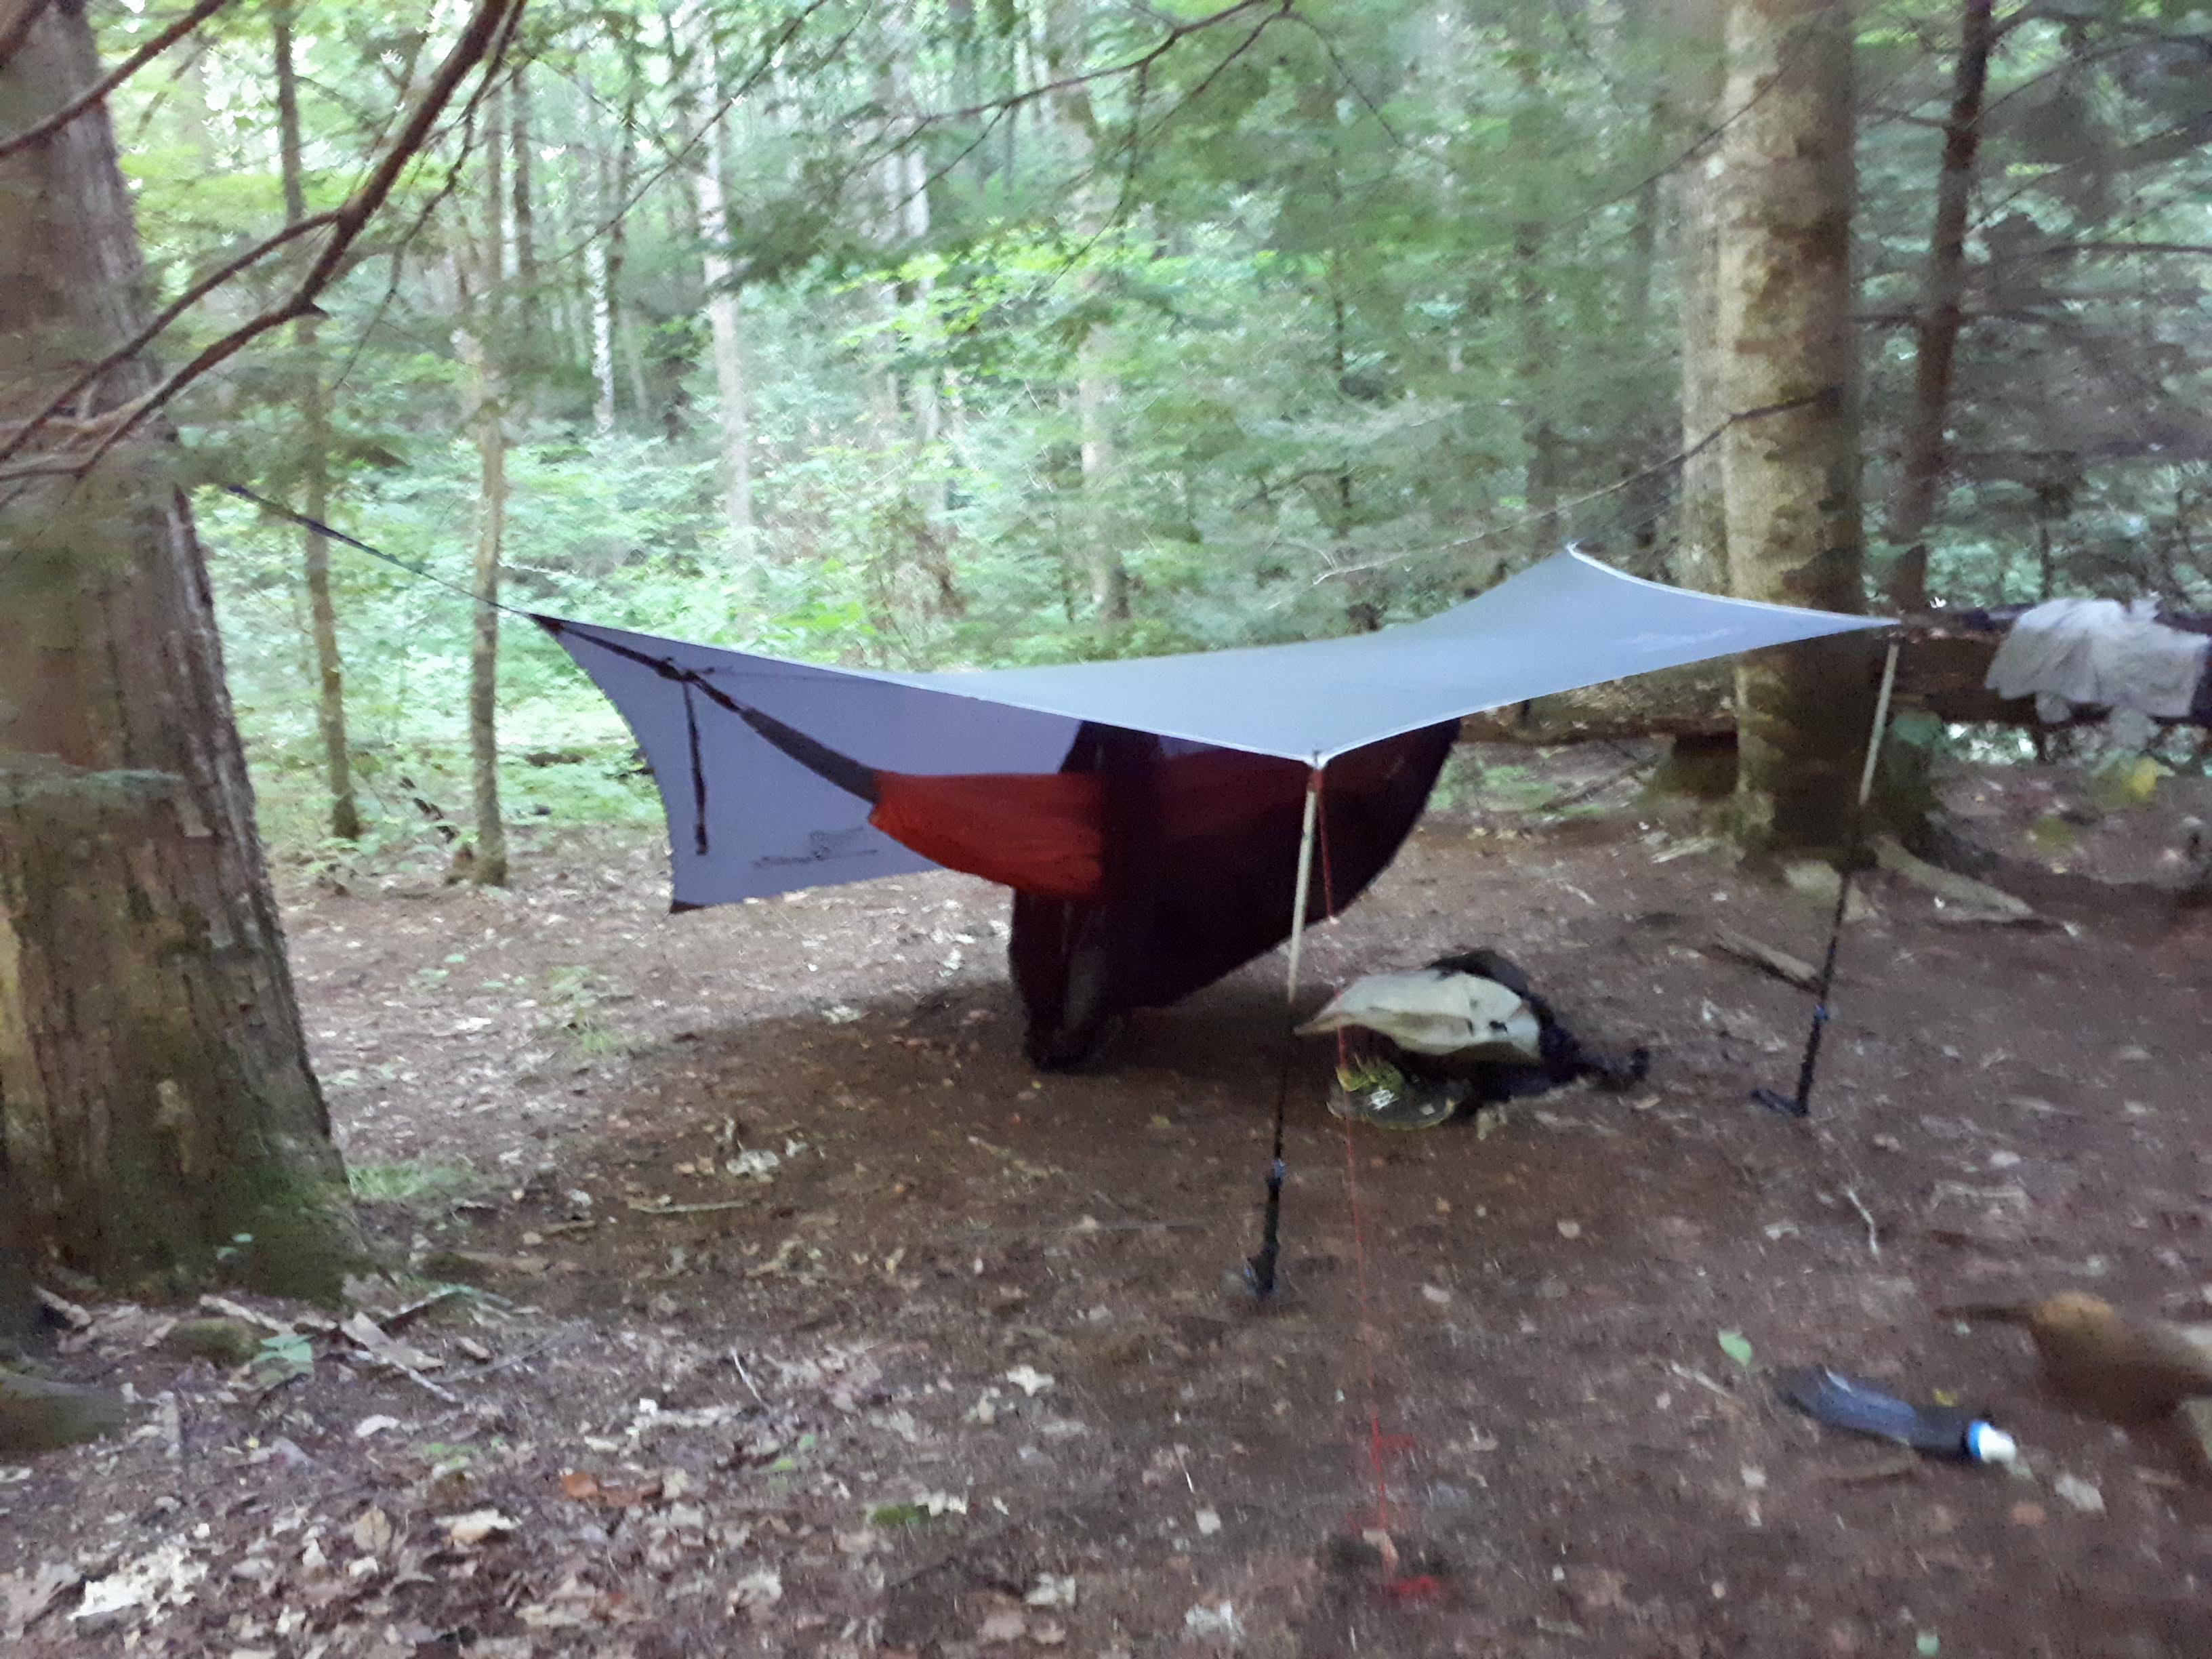 Fs Ultralight Hammock System Including Underquilt Bug Net The Retail Price For These Combined Is About 300 I Am Asking 200 Which Includes Shipping To Conus Paypal Ff Preferred Or Buyer Pays Fees